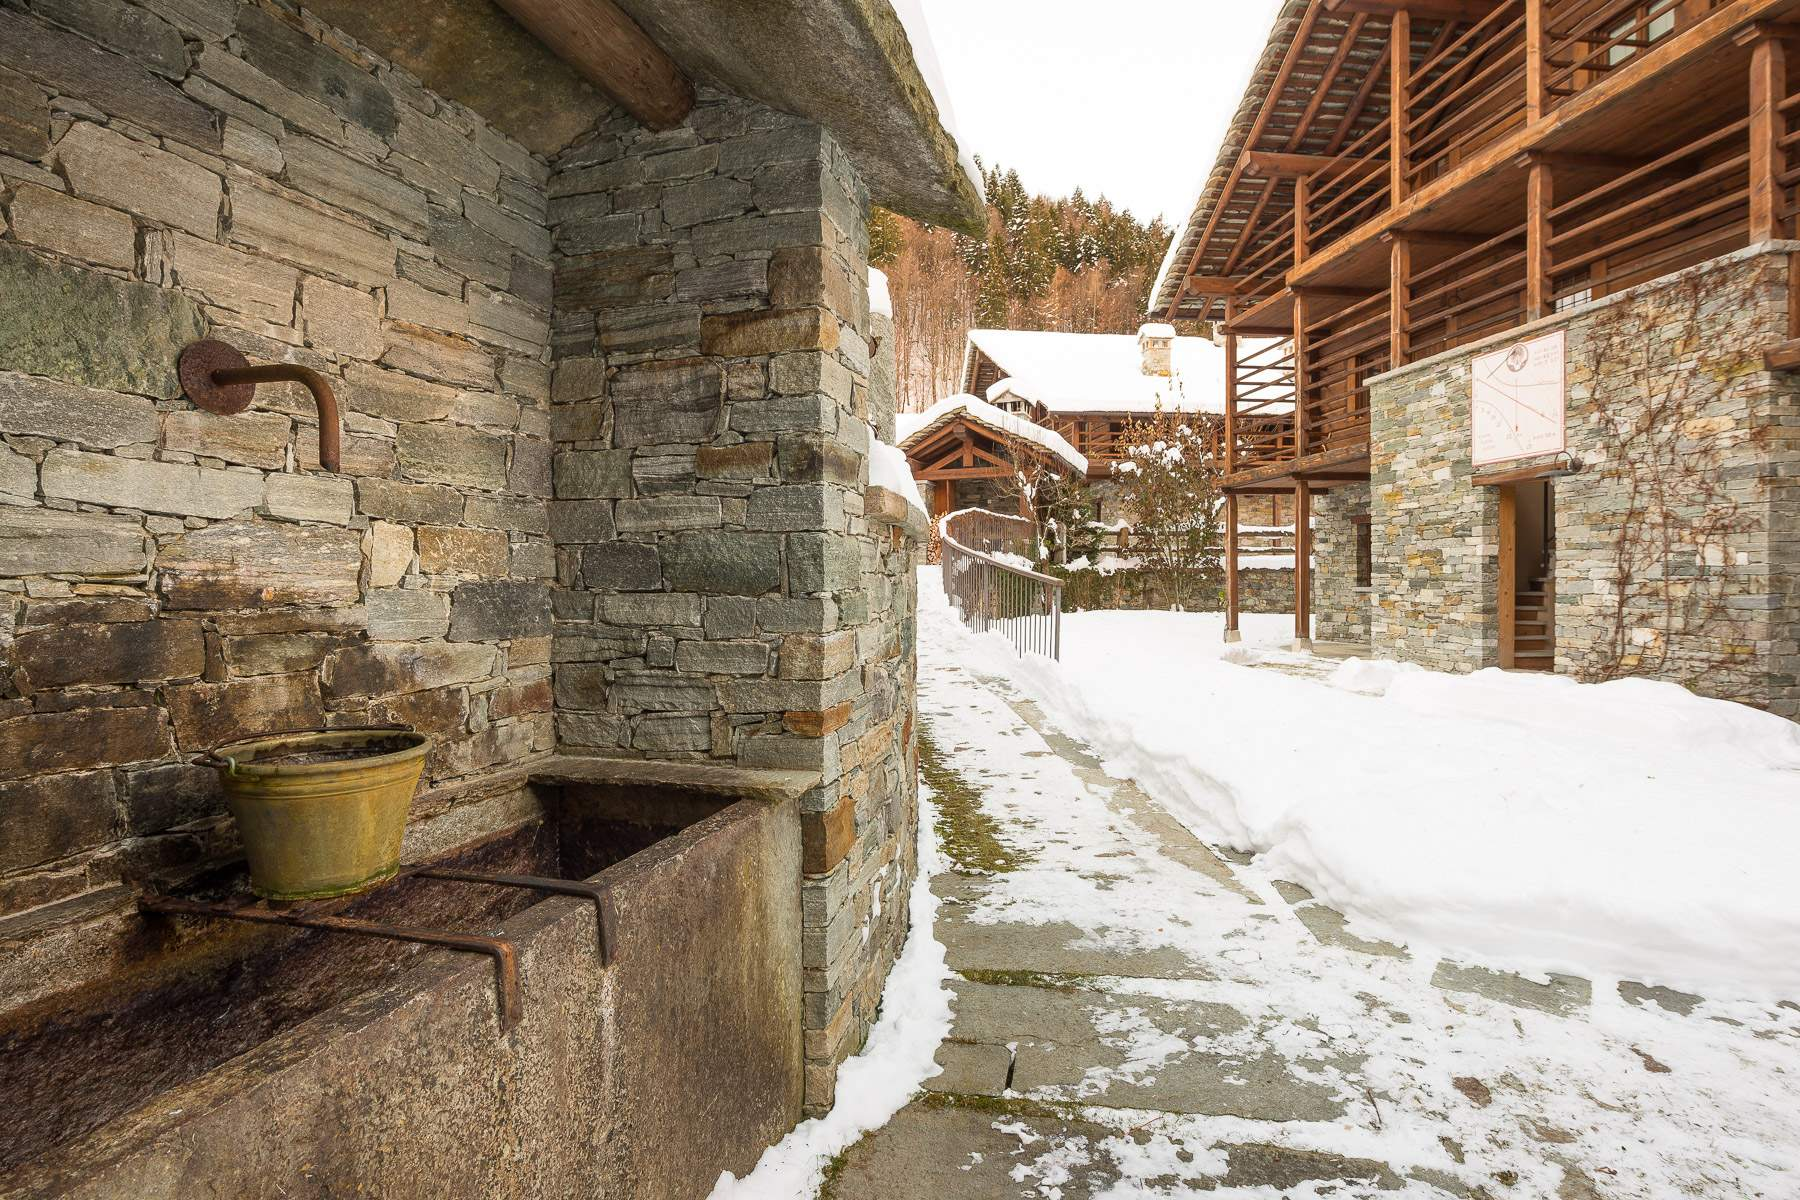 alagna valsesia gay personals The church of san defendente built by the villagers who escaped the plague of 1630 has three sundials dating early 1800s, the work of g carestia leaving the trail (no210) that leads to cima mutta, continue left along a well marked scenic trail and you will reach the village of oro in 10 minutes.